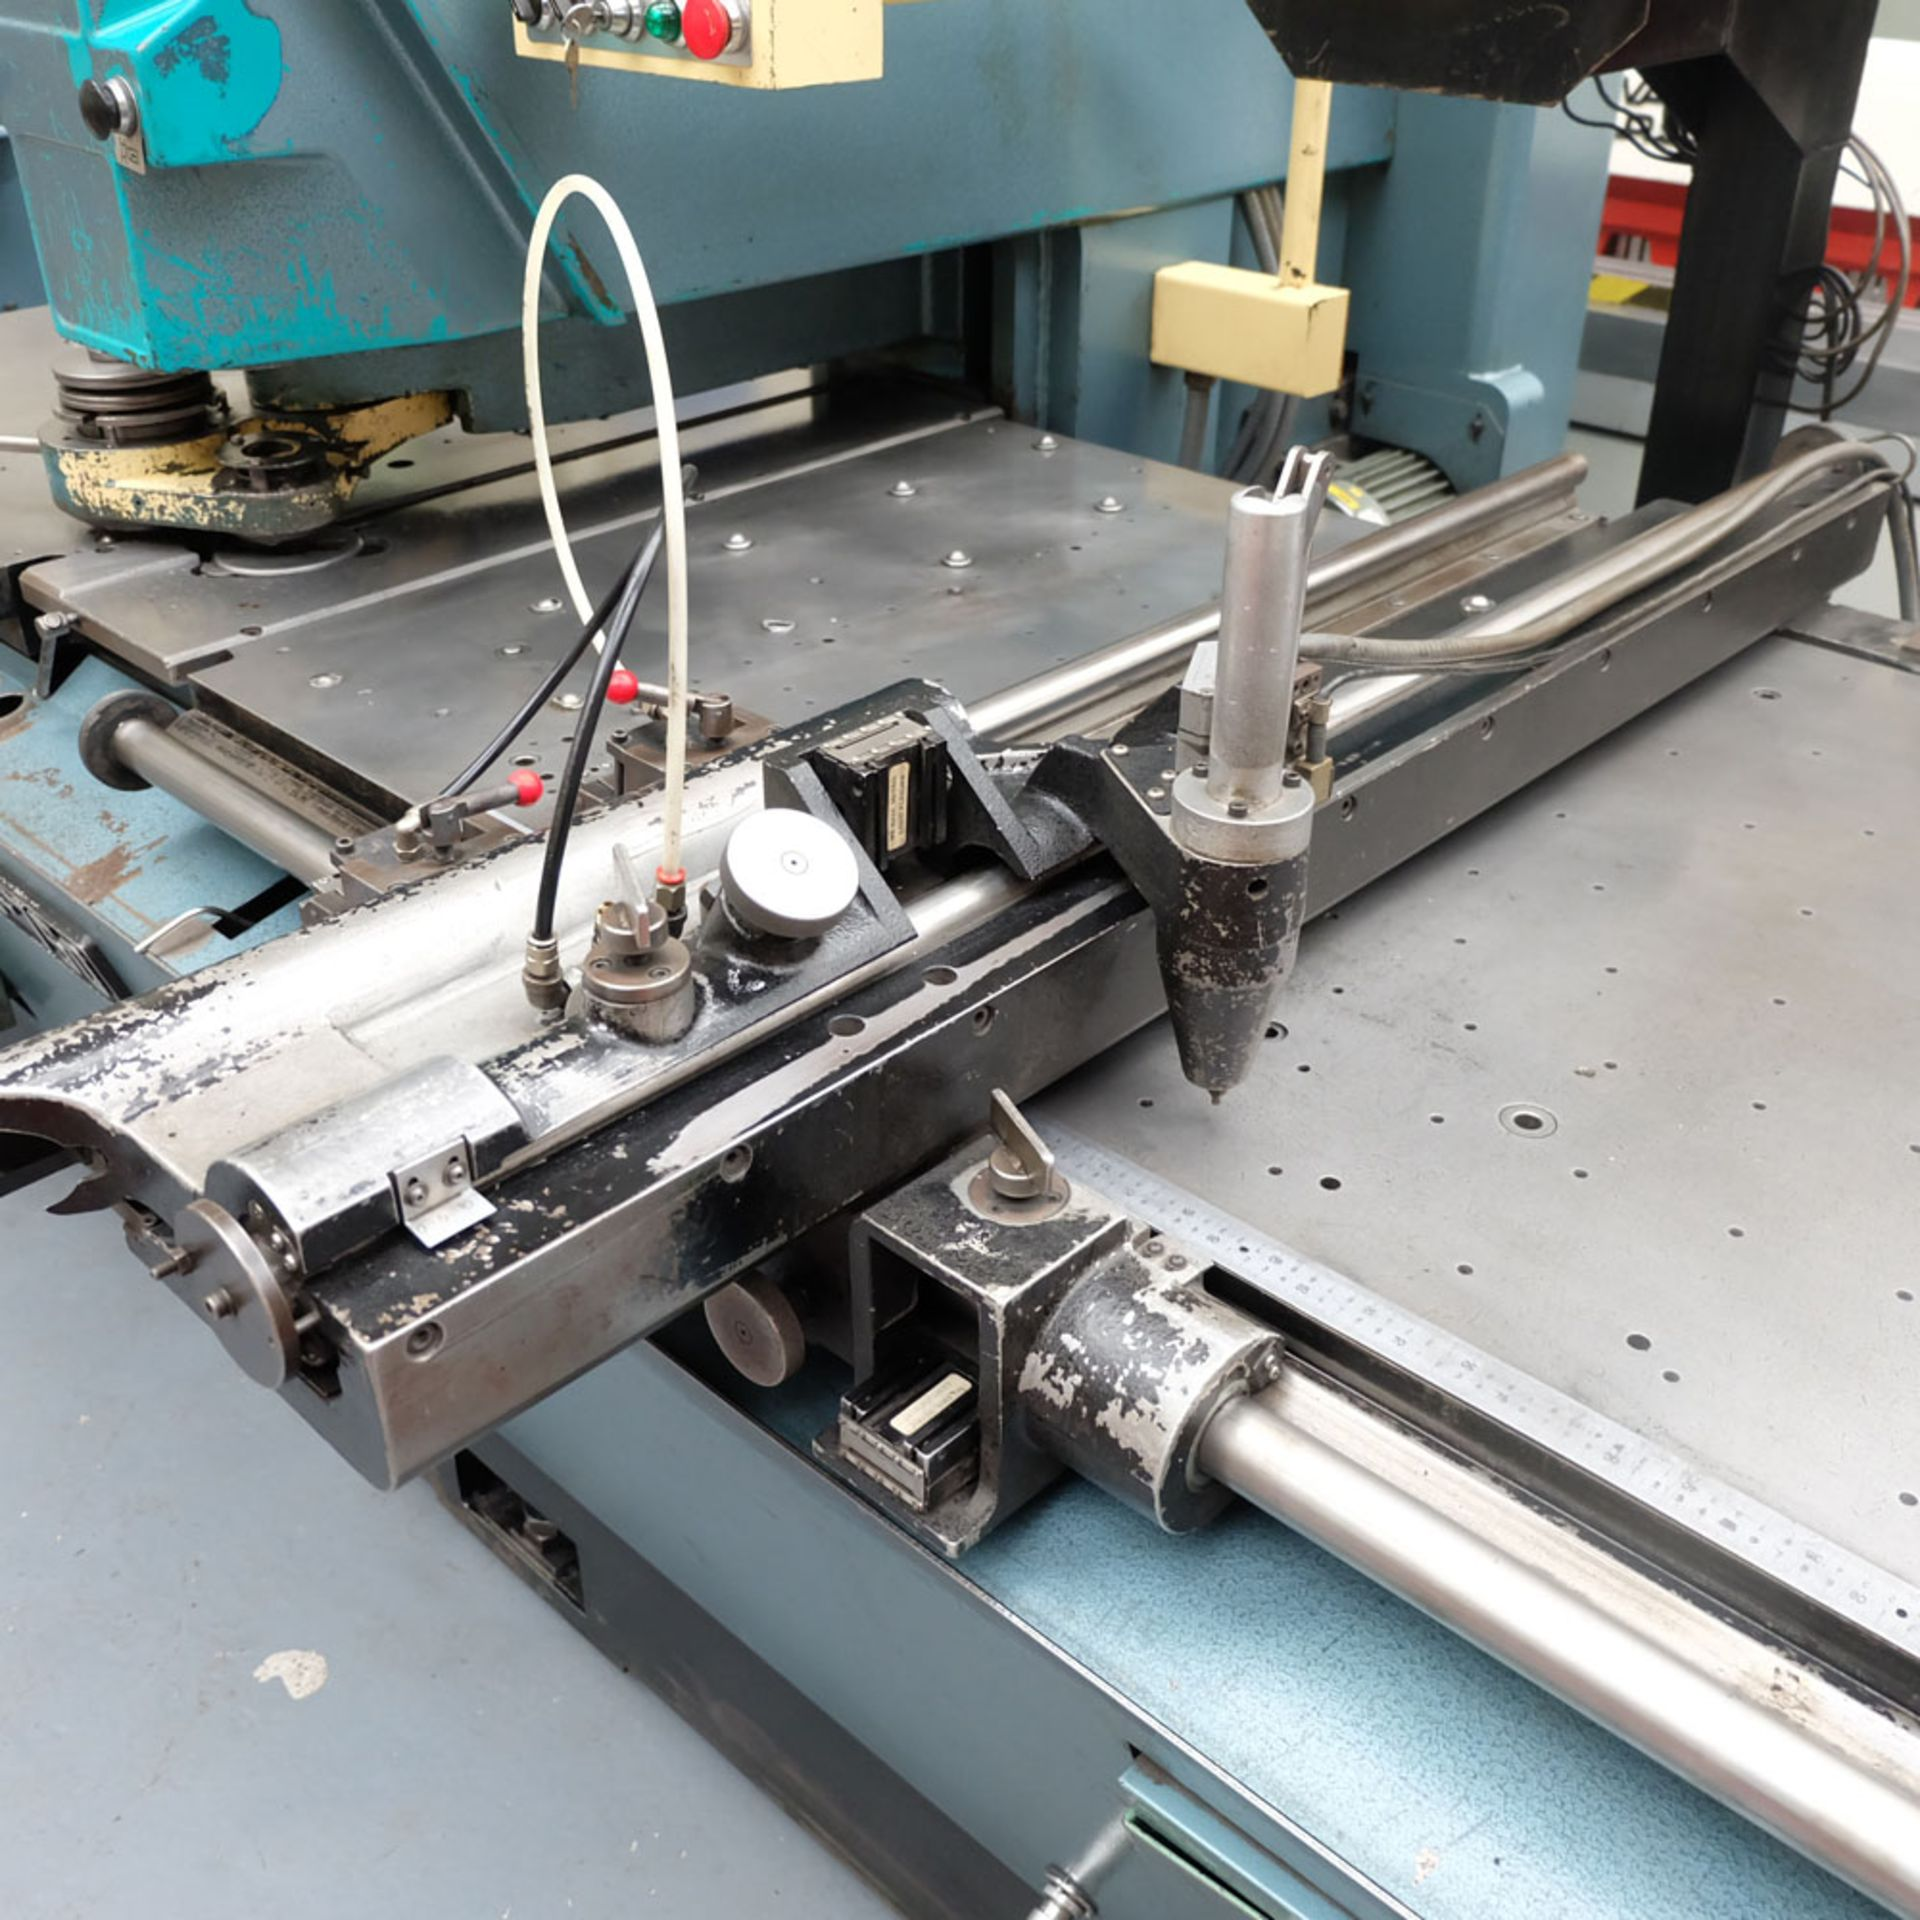 Amada D-750 Duplicator Punching Machine with Tooling and Digital Readout. - Image 5 of 8